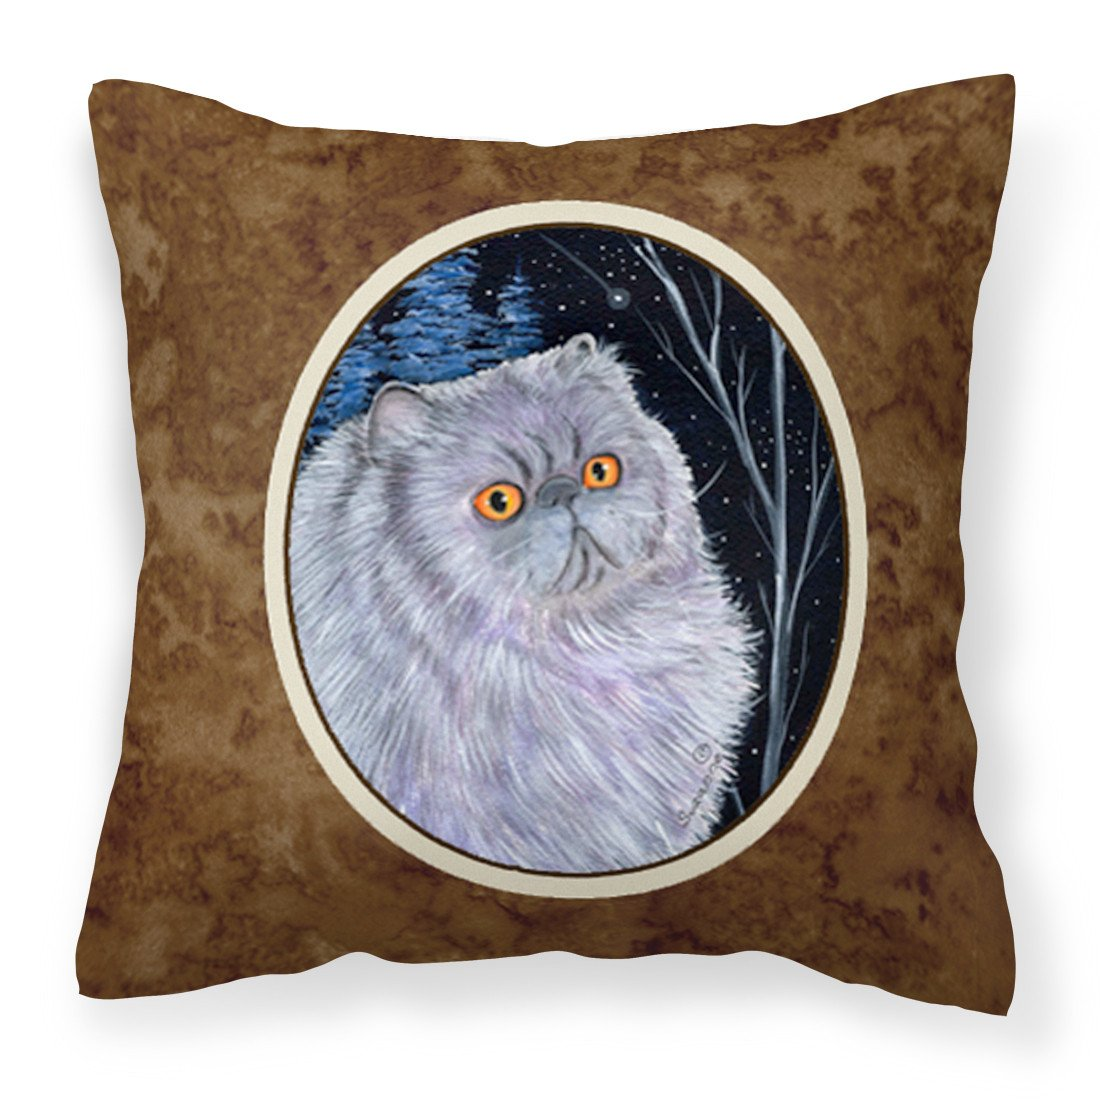 Starry Night Cat - Persian Fabric Decorative Pillow SS8402PW1414 by Caroline's Treasures